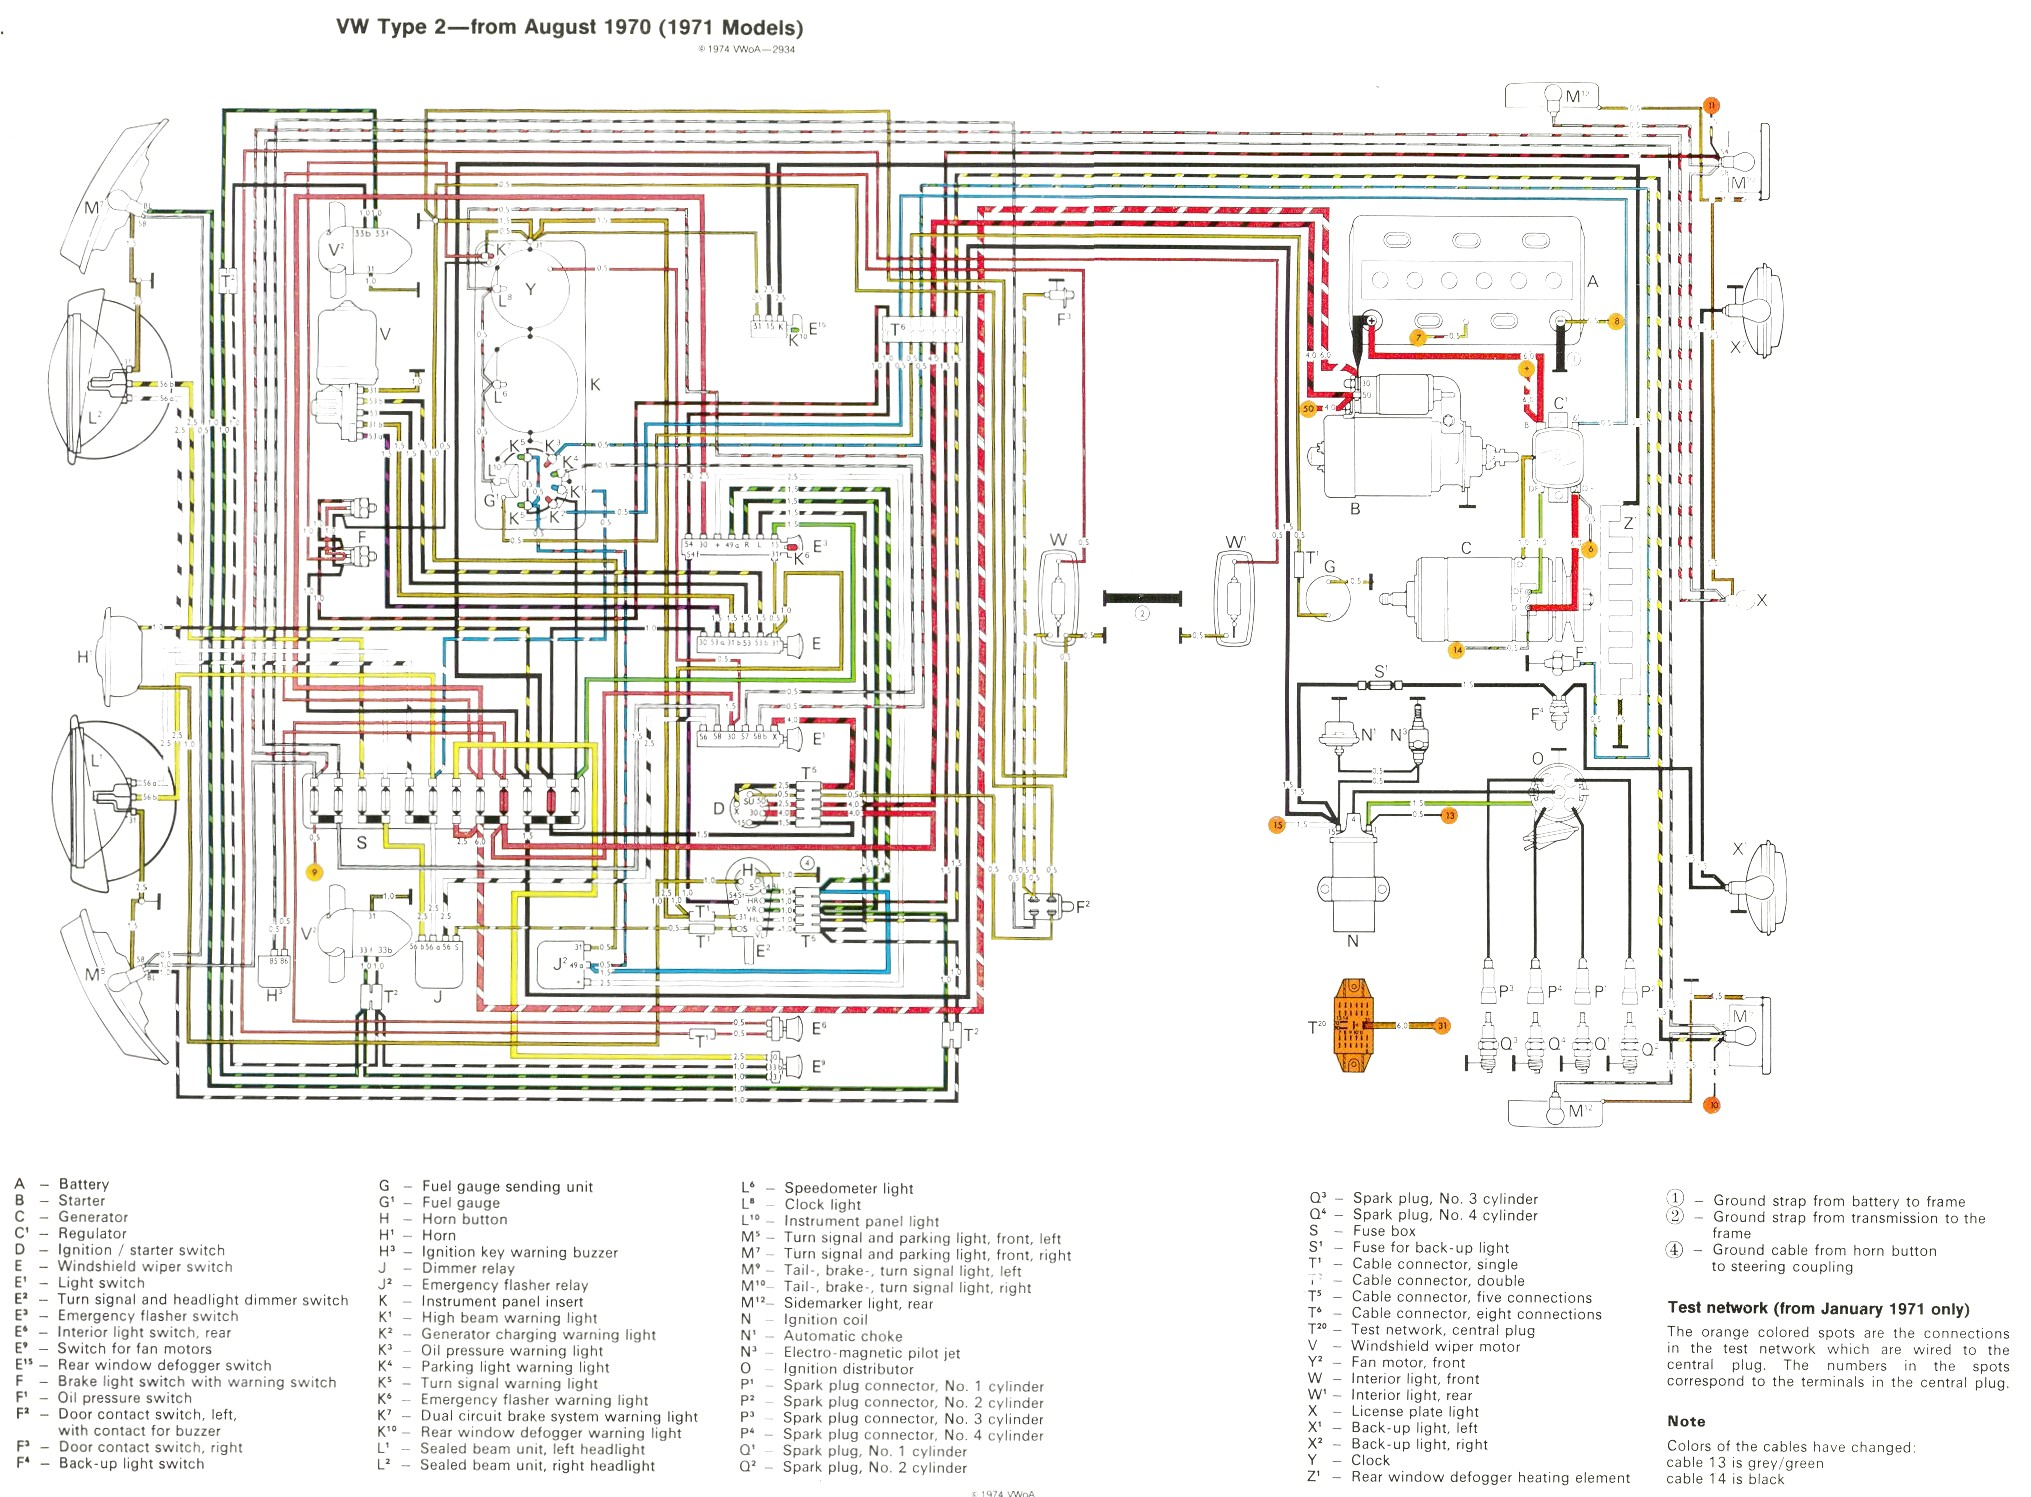 bus 70 71 baywindow fusebox layout 1971 vw bus wiring diagram at crackthecode.co